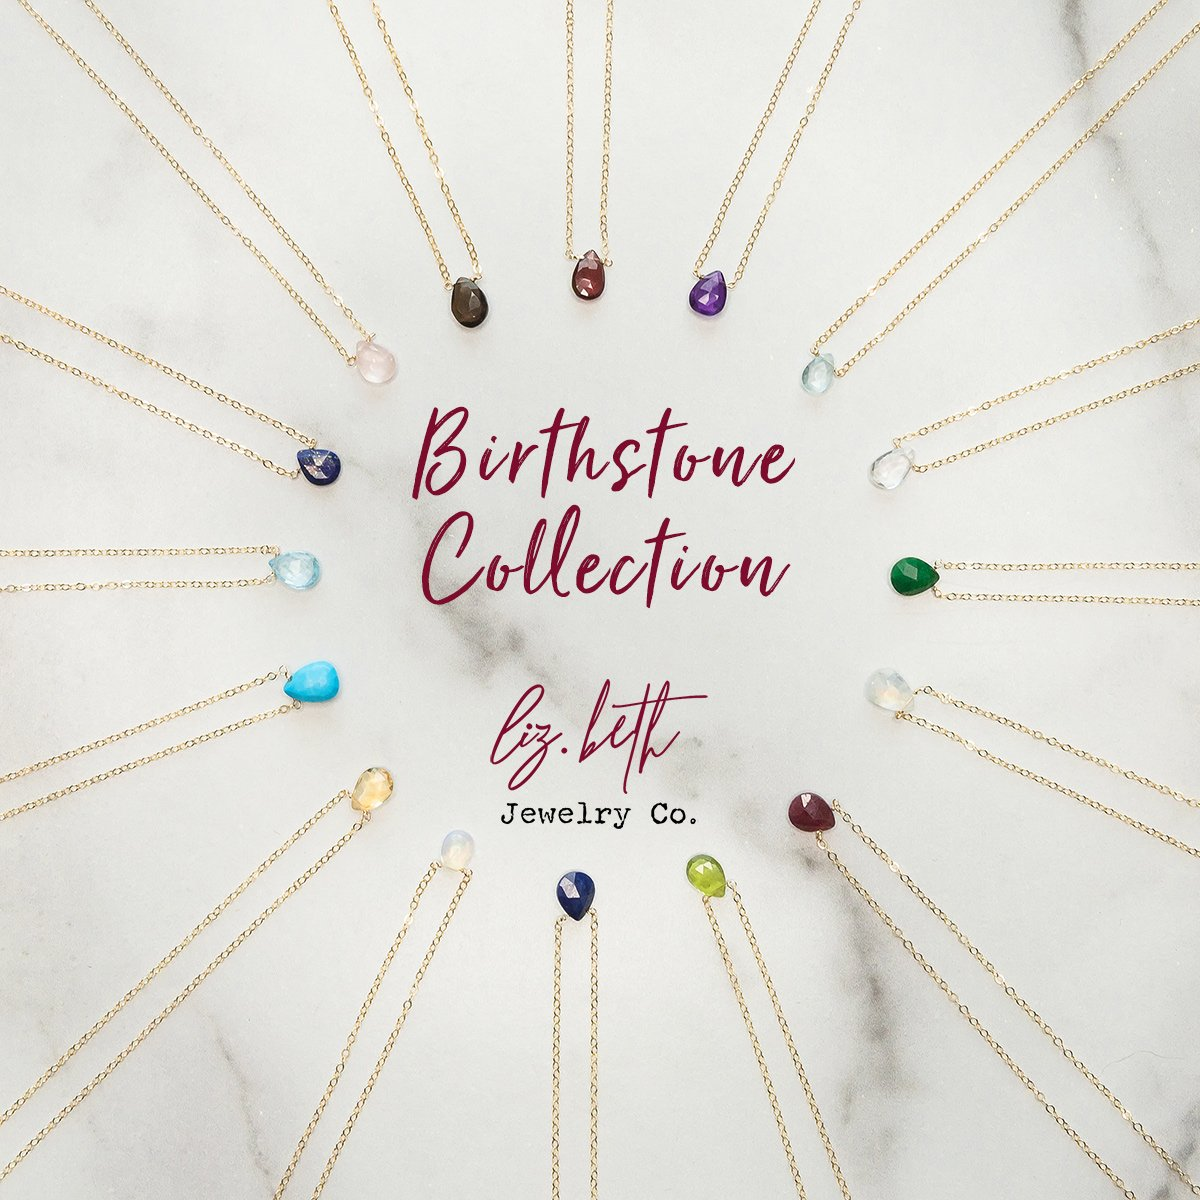 Birthstones by Month, Birthstone Chart, Birthstone Collection, Birthstone Colors